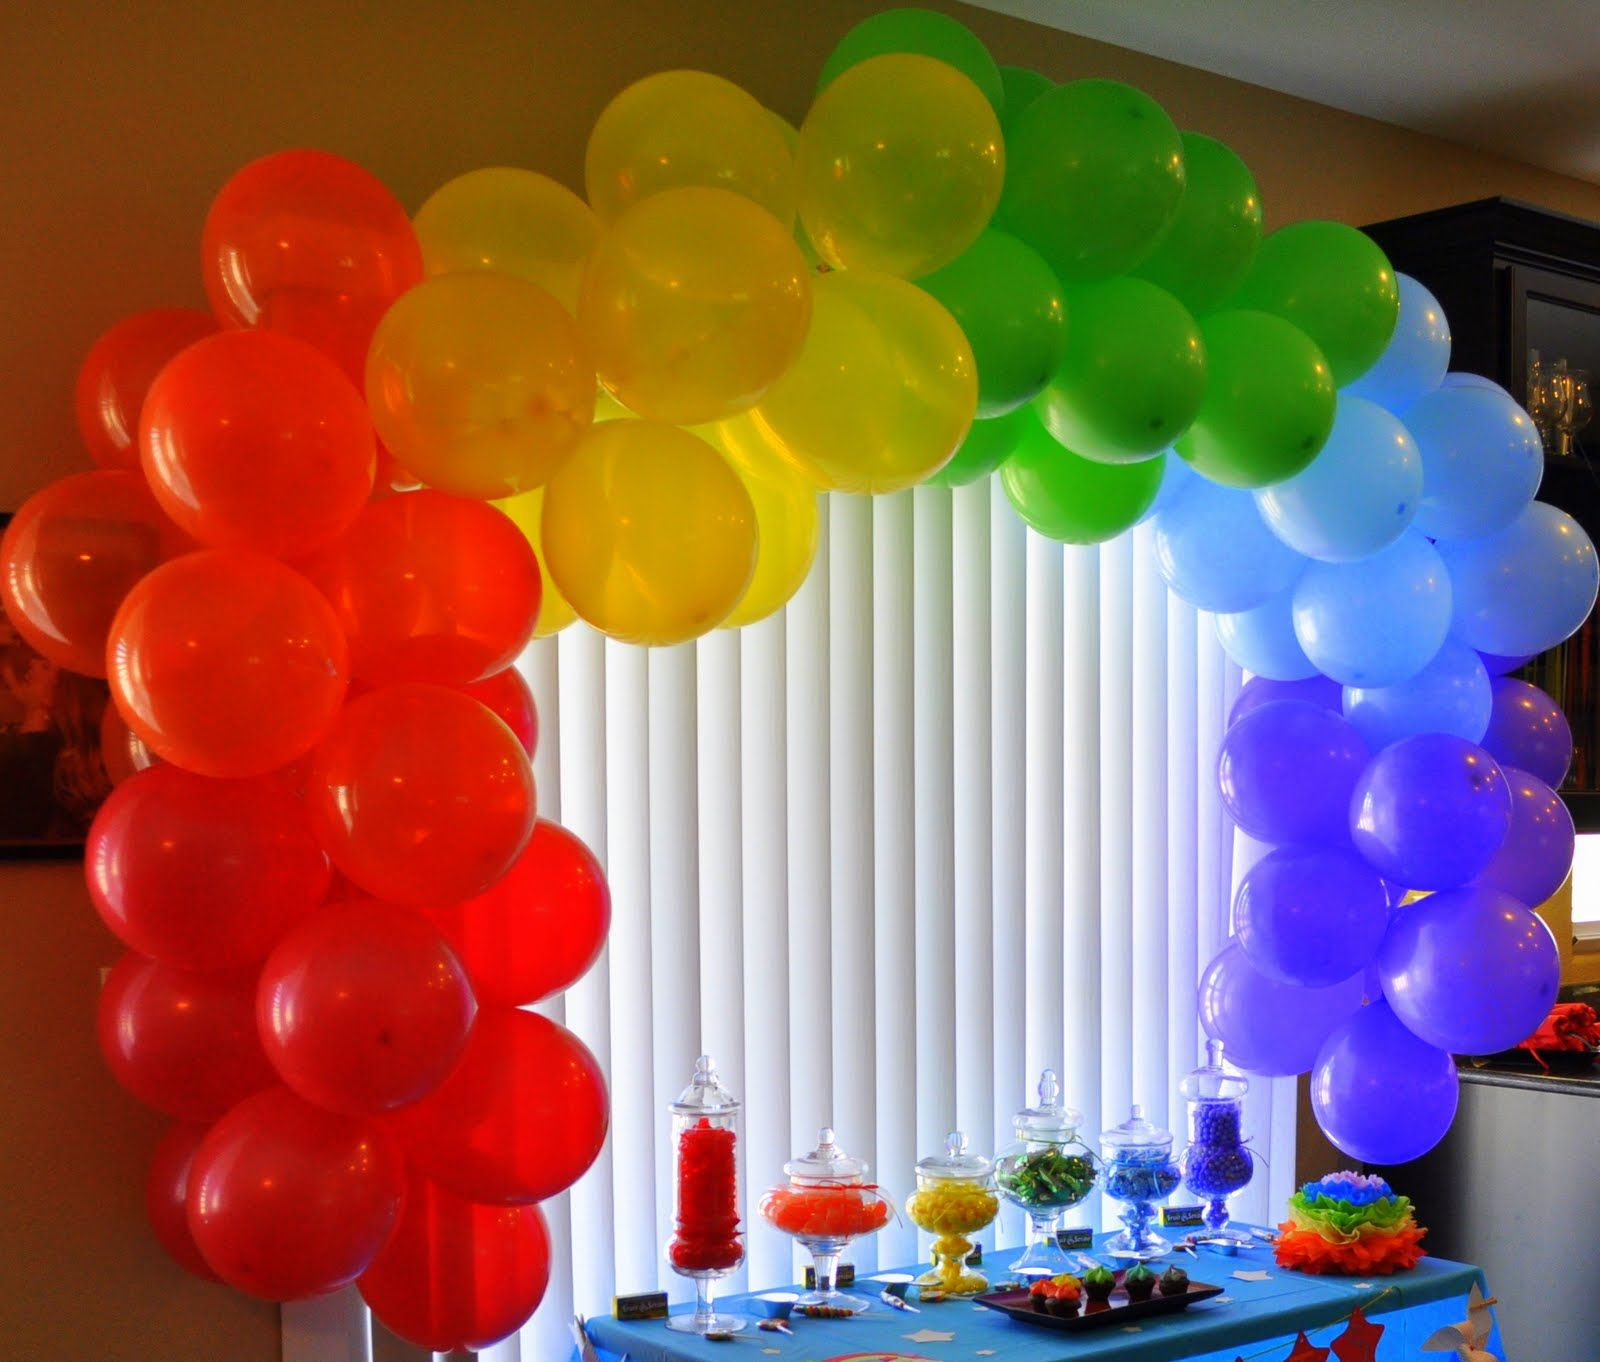 Balloons Rainbow We Used A Balloon Arch Strip From Party City To Tie The Balloons To T Party City Balloons Glitter Birthday Parties Care Bears Birthday Party